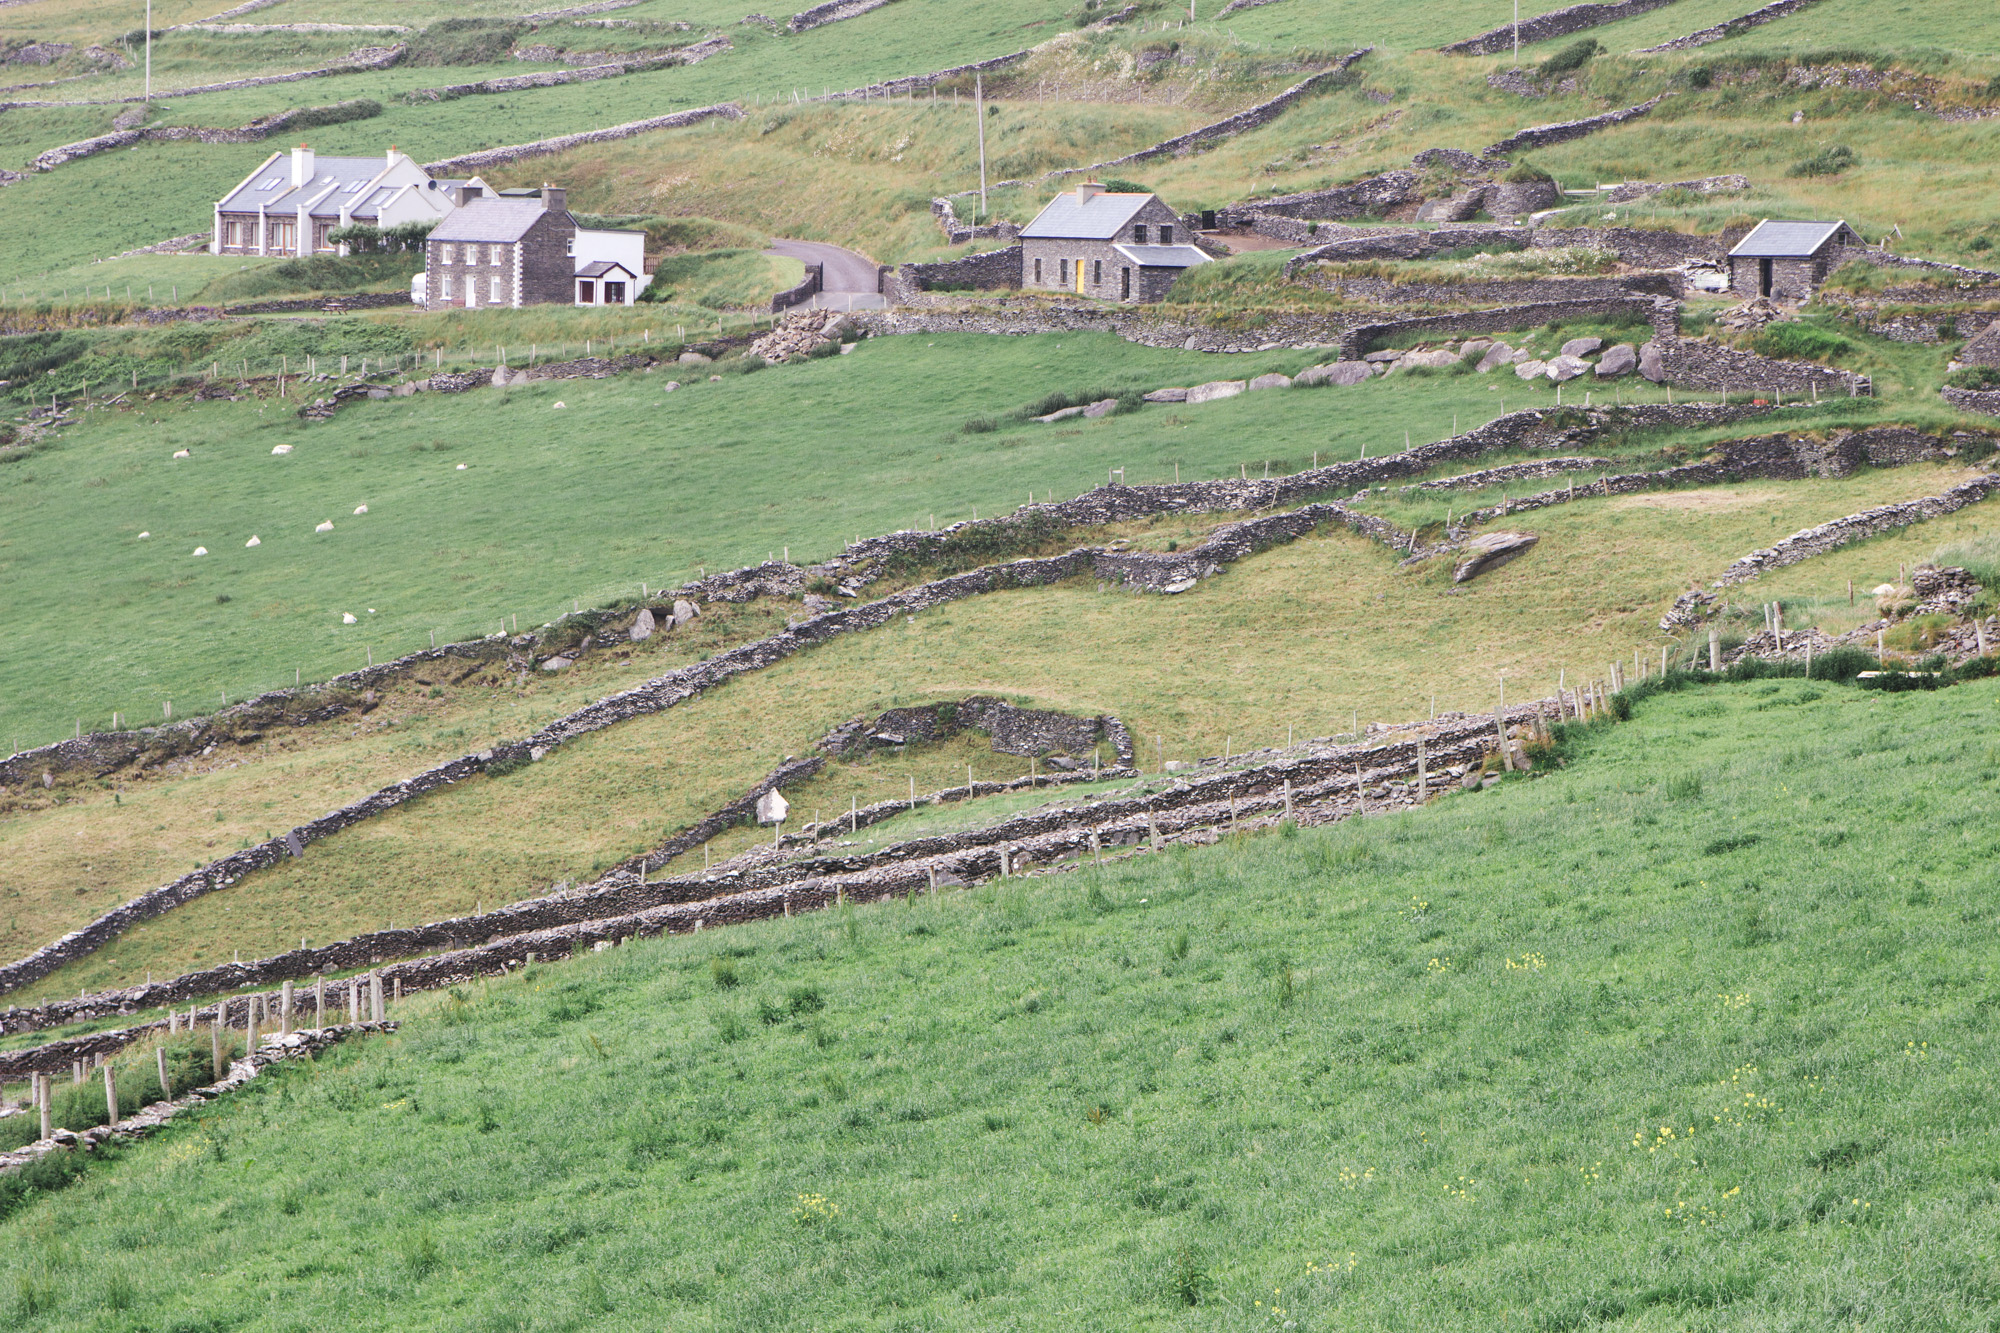 Hill with houses and stone fences on Slea Head Drive in Dingle in Ireland